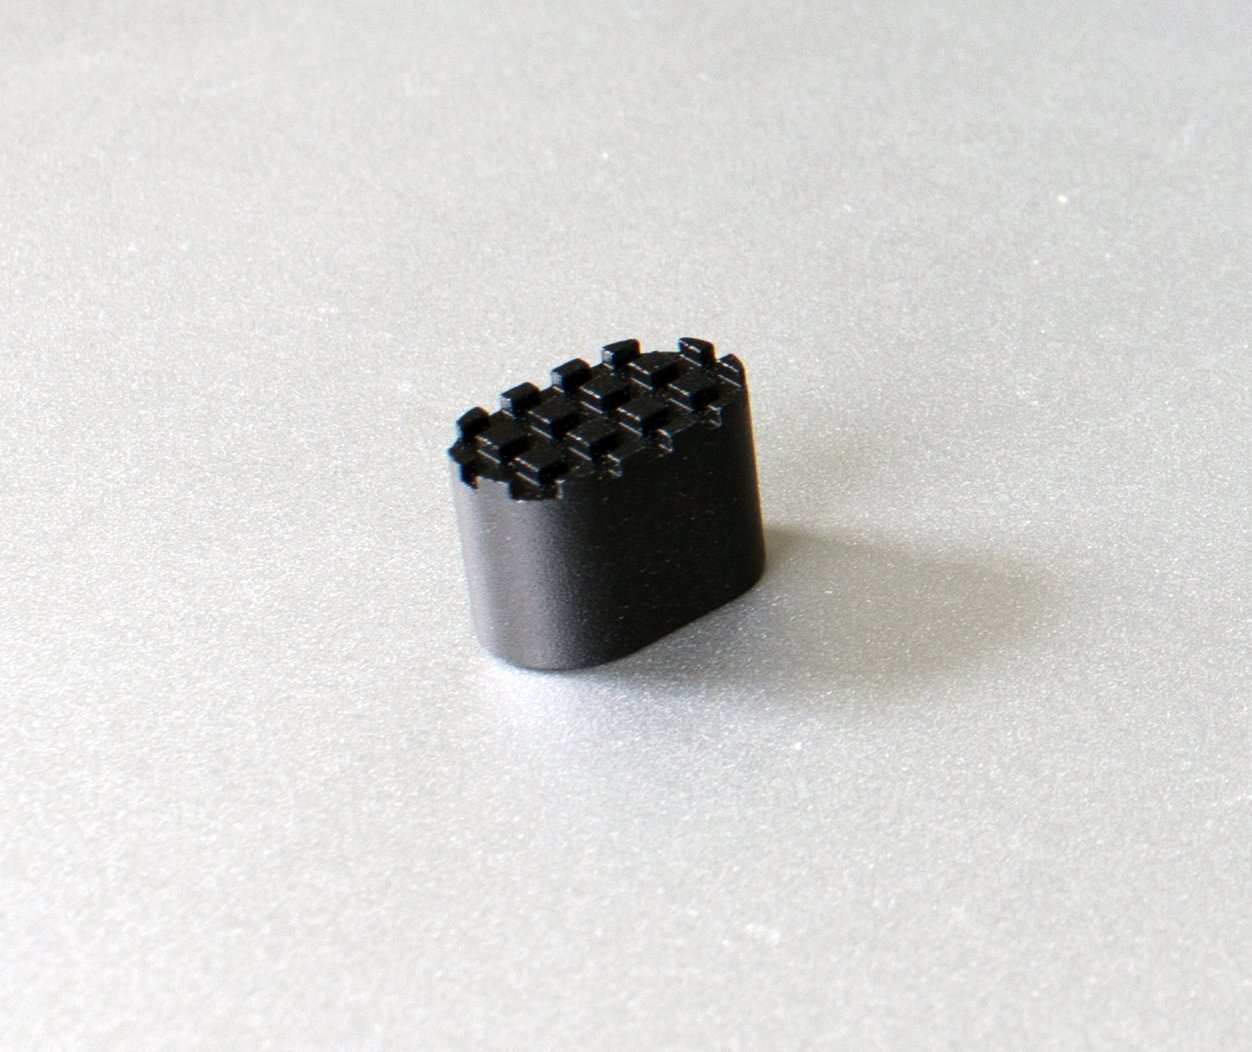 Aluminum Ultra Light Magazine Release Button for AR15 .223 / 5.56 (MB)